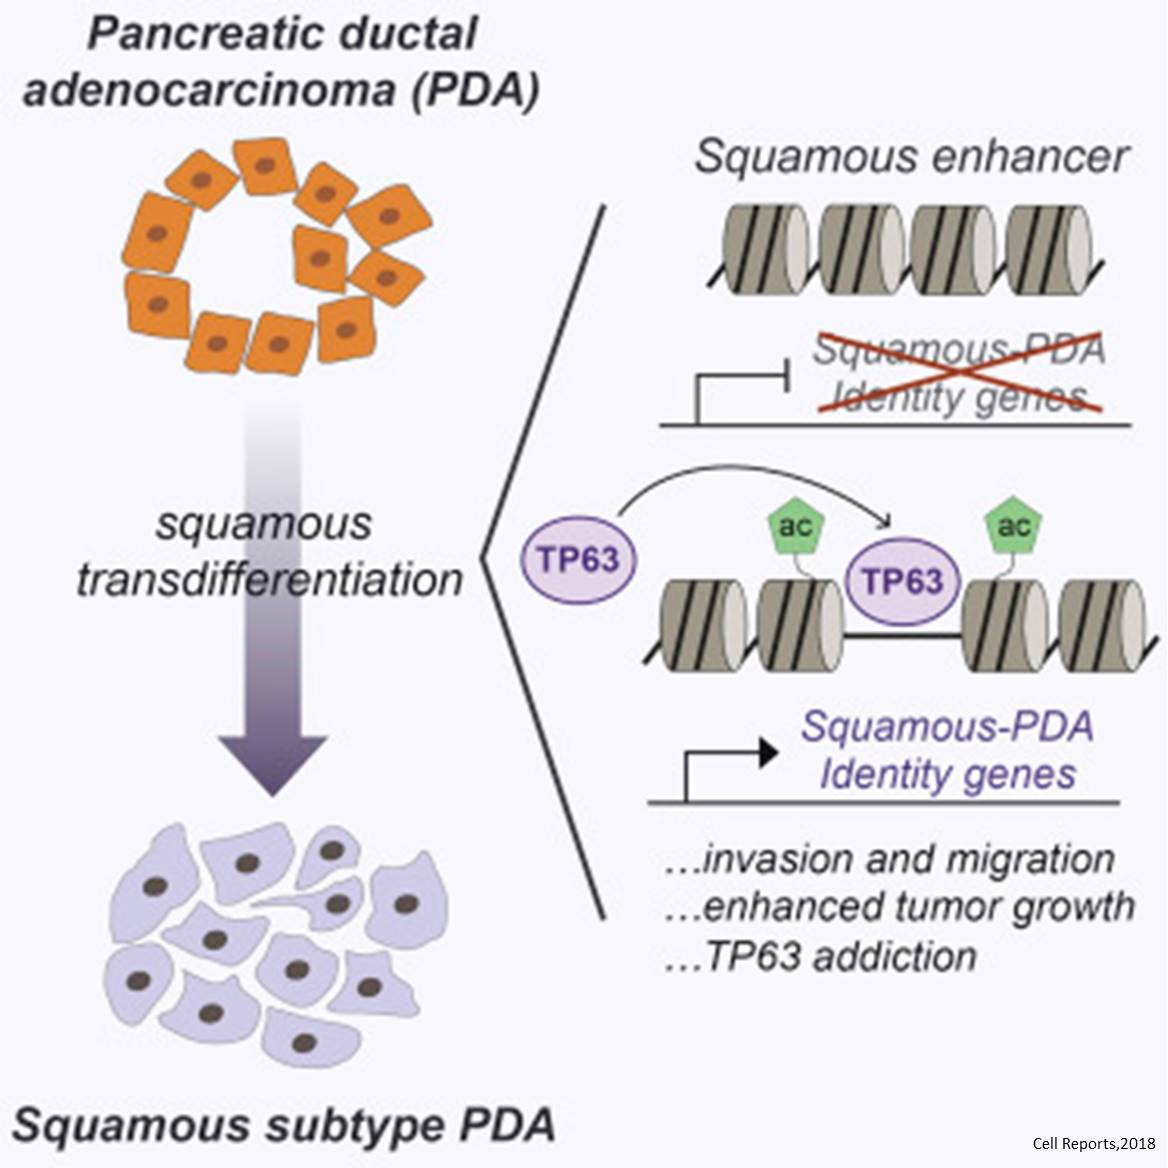 Expression of a specific protein detrimental to early death in pancreatic cancer